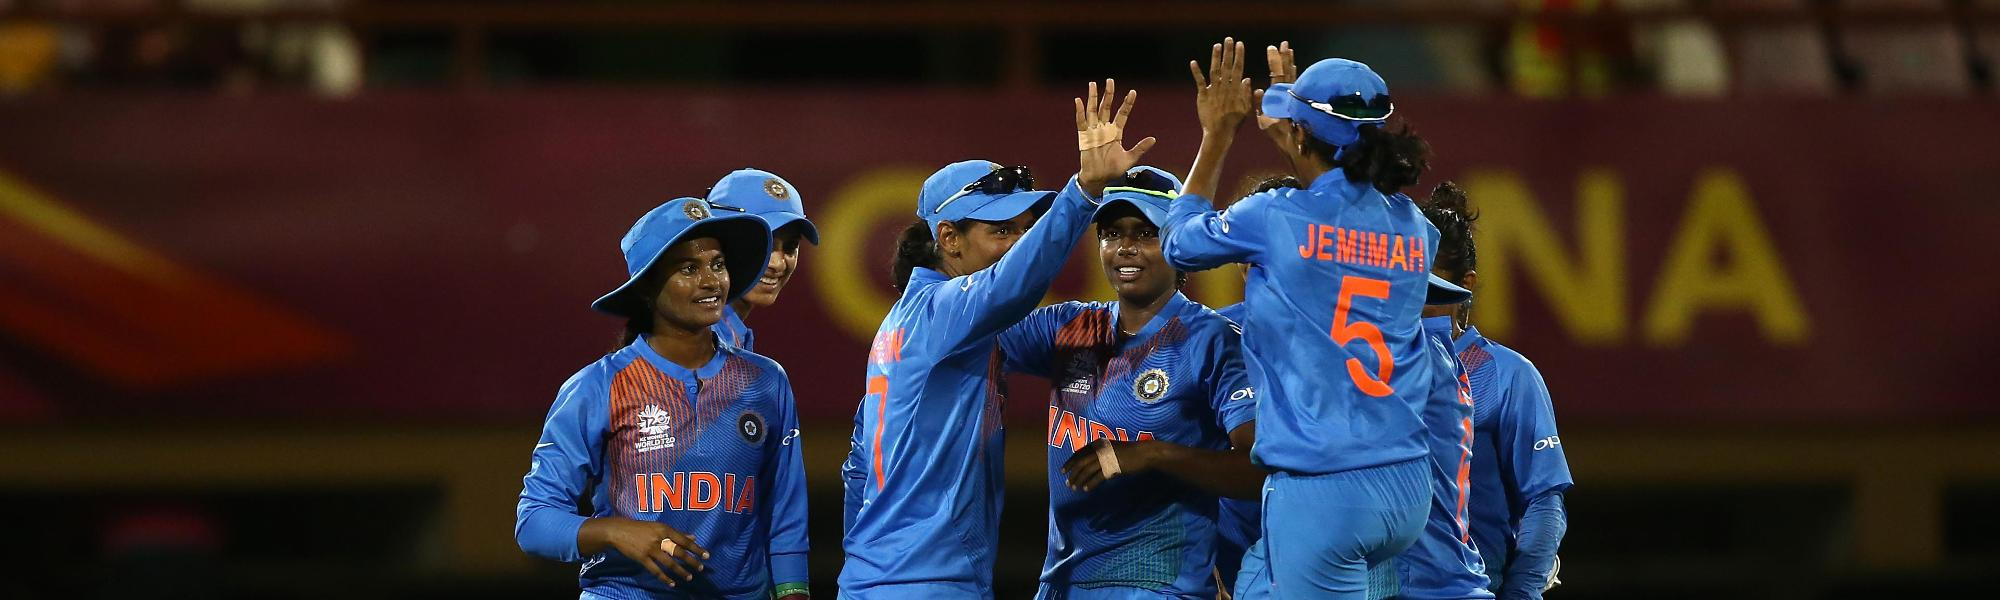 Harmanpreet Kaur of India celebrates a wicket with team mates during the warm up match between England and India ahead of the ICC Women's World T20 2018 tournament at Guyana National Stadium on November 7, 2018 in Georgetown, Guyana.